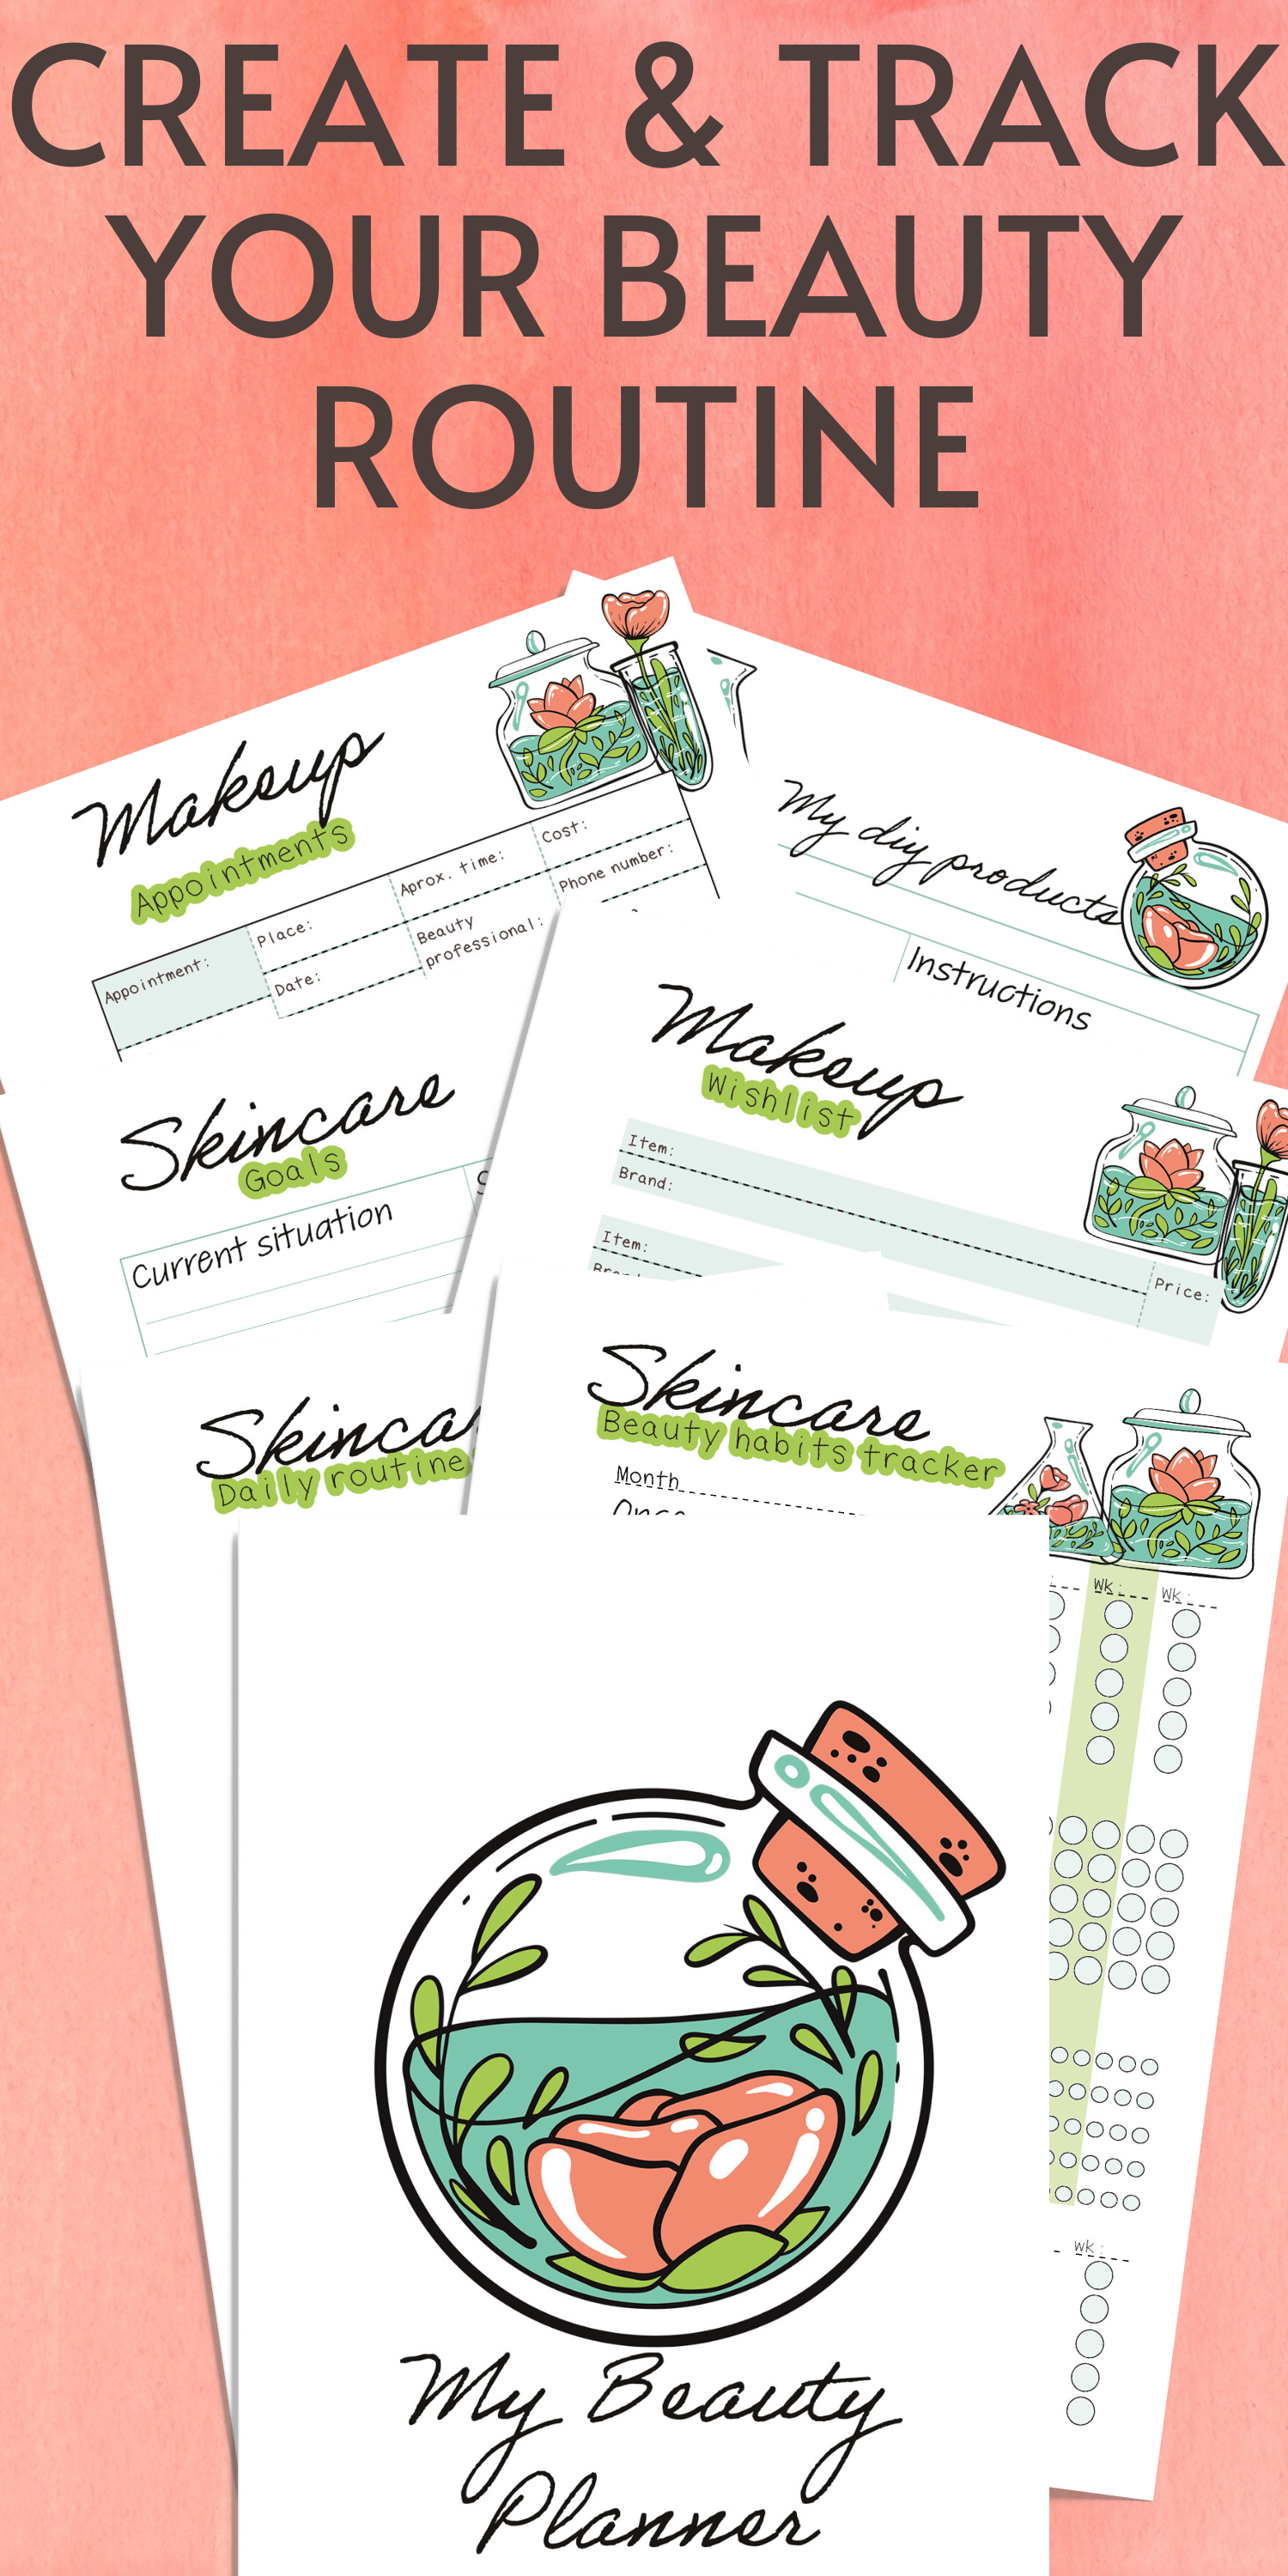 Beauty Planner Printable  Etsy in 8  Beauty routines, Skin